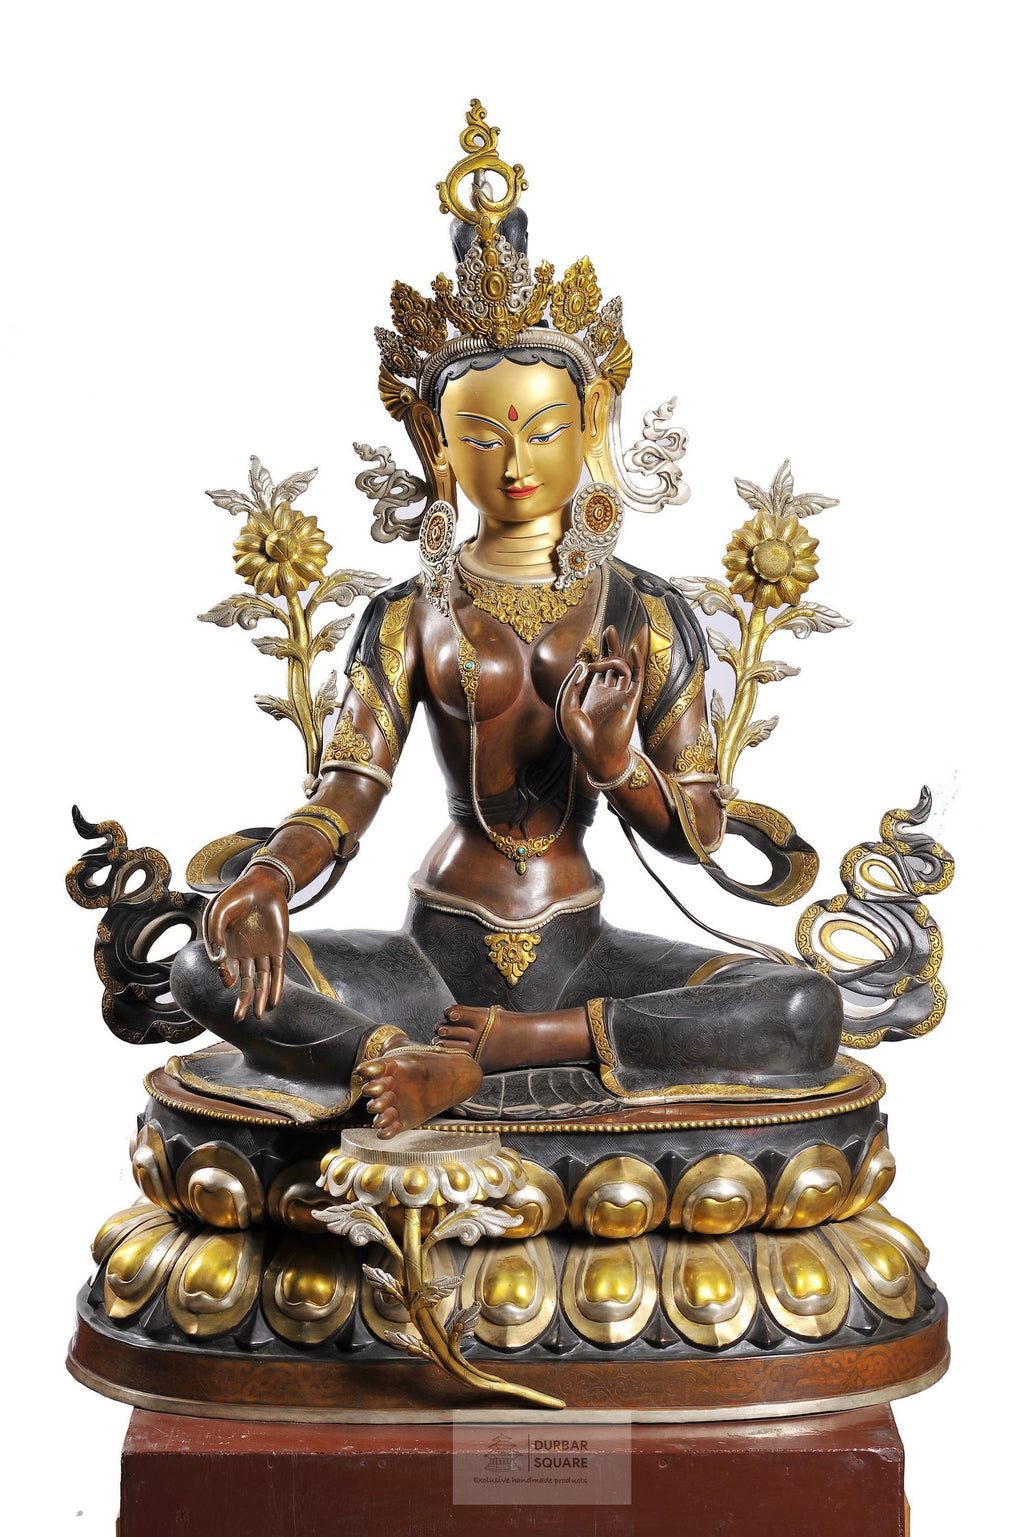 Gold and Silver plated Green Tara Statue